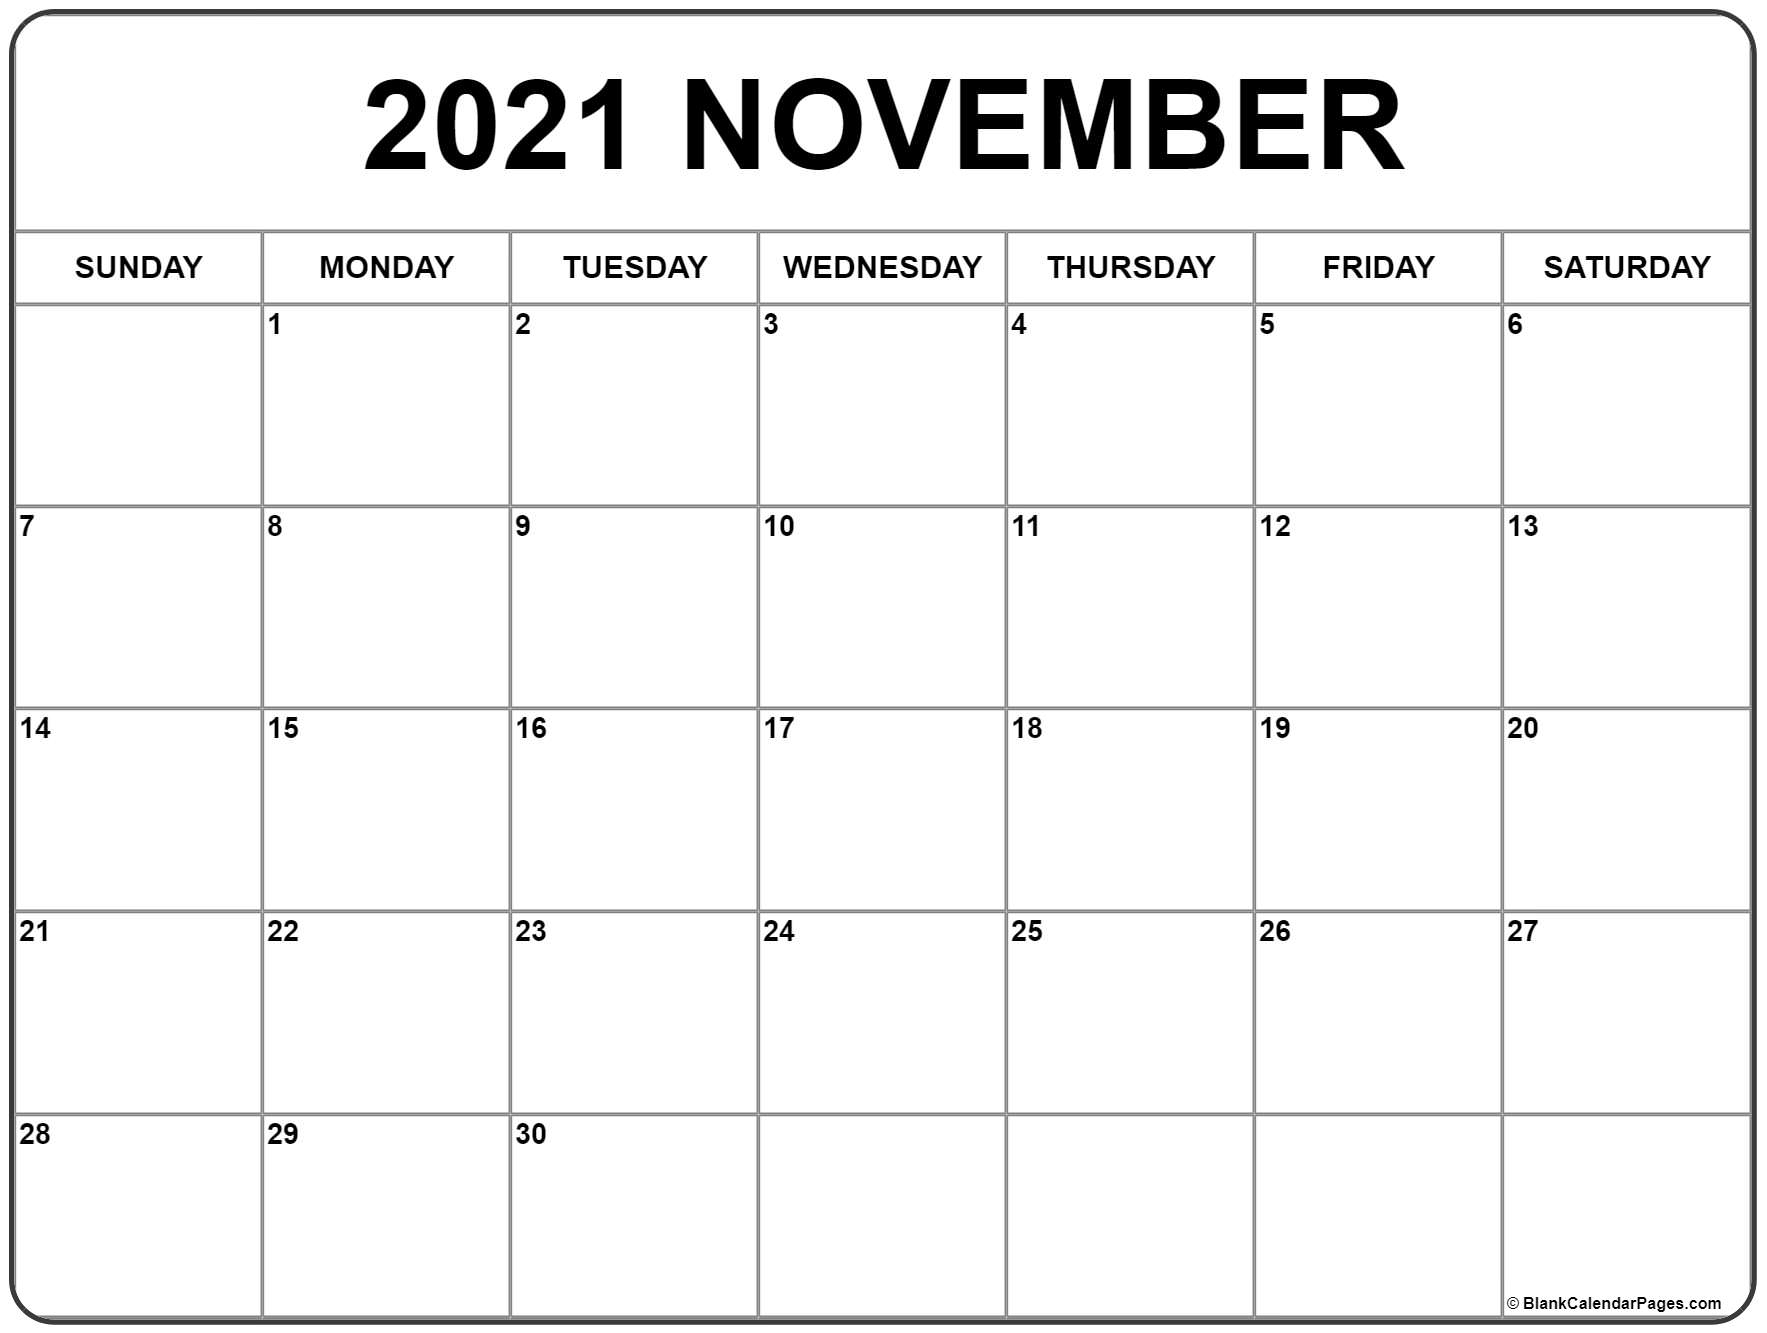 Collect November 2021 Printable Calendar Sheet